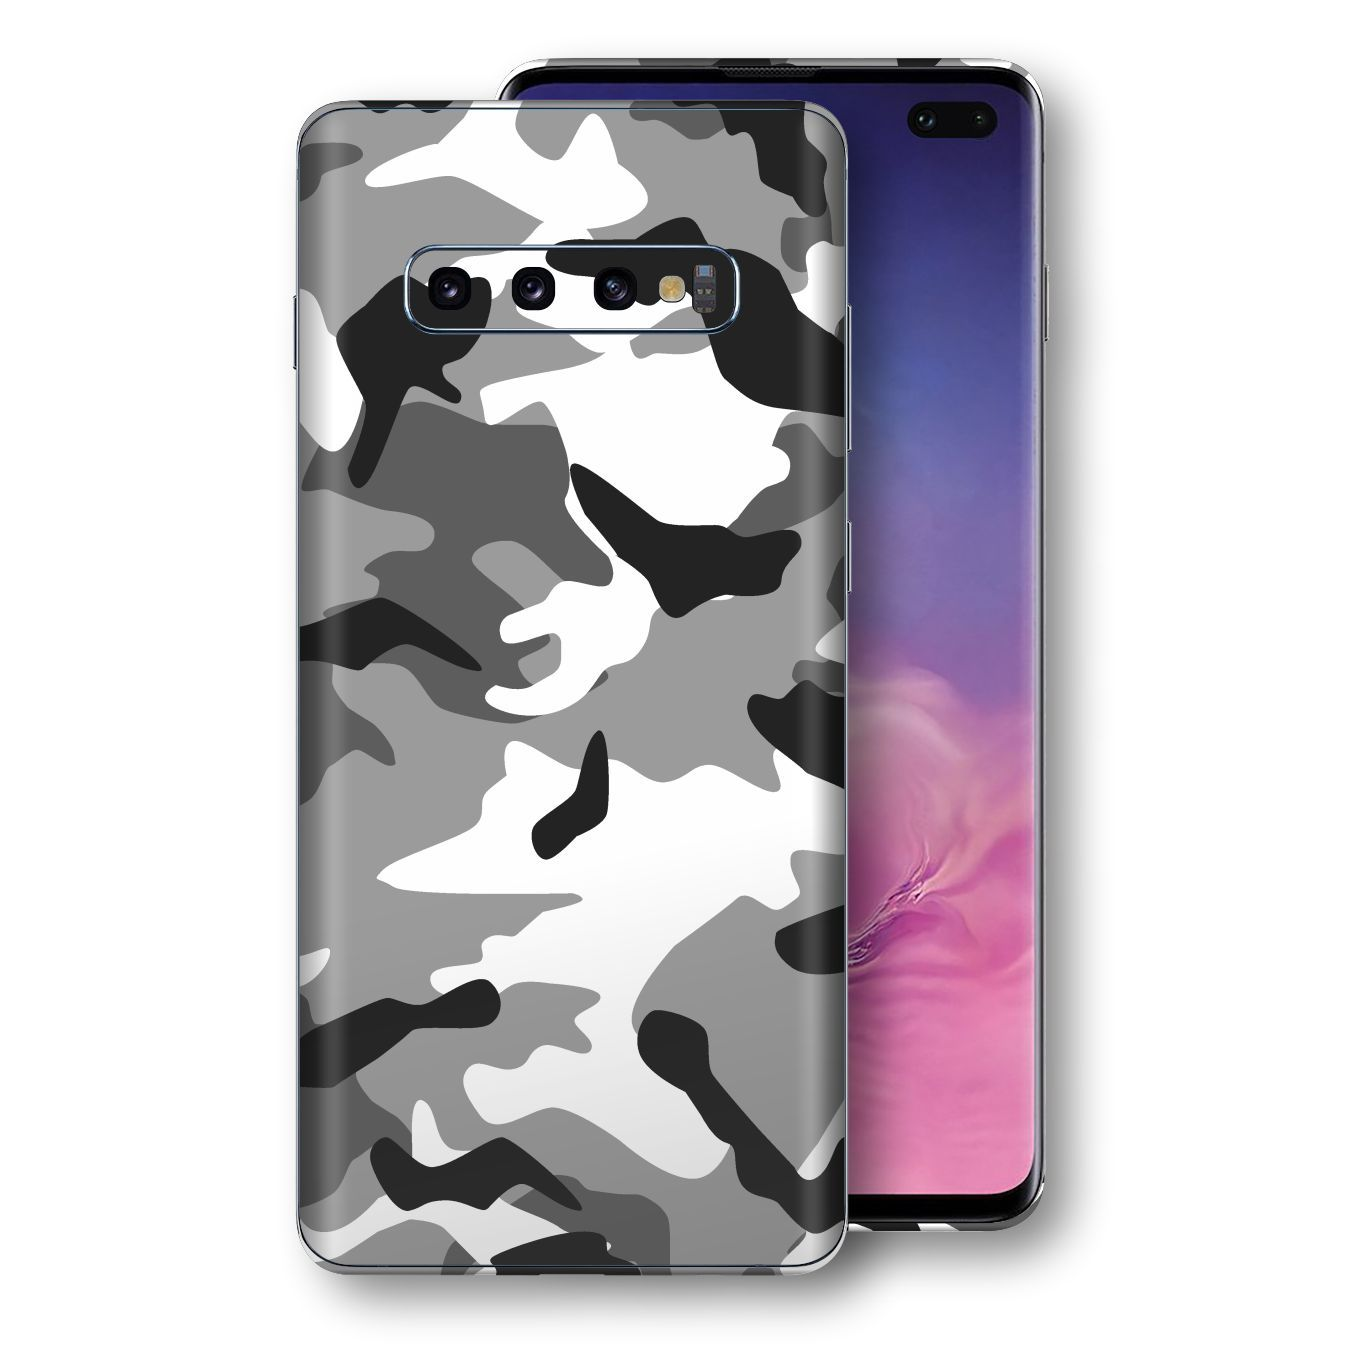 Samsung Galaxy S10+ PLUS Print Custom Signature Grey Camouflage Camo Skin Wrap Decal by EasySkinz